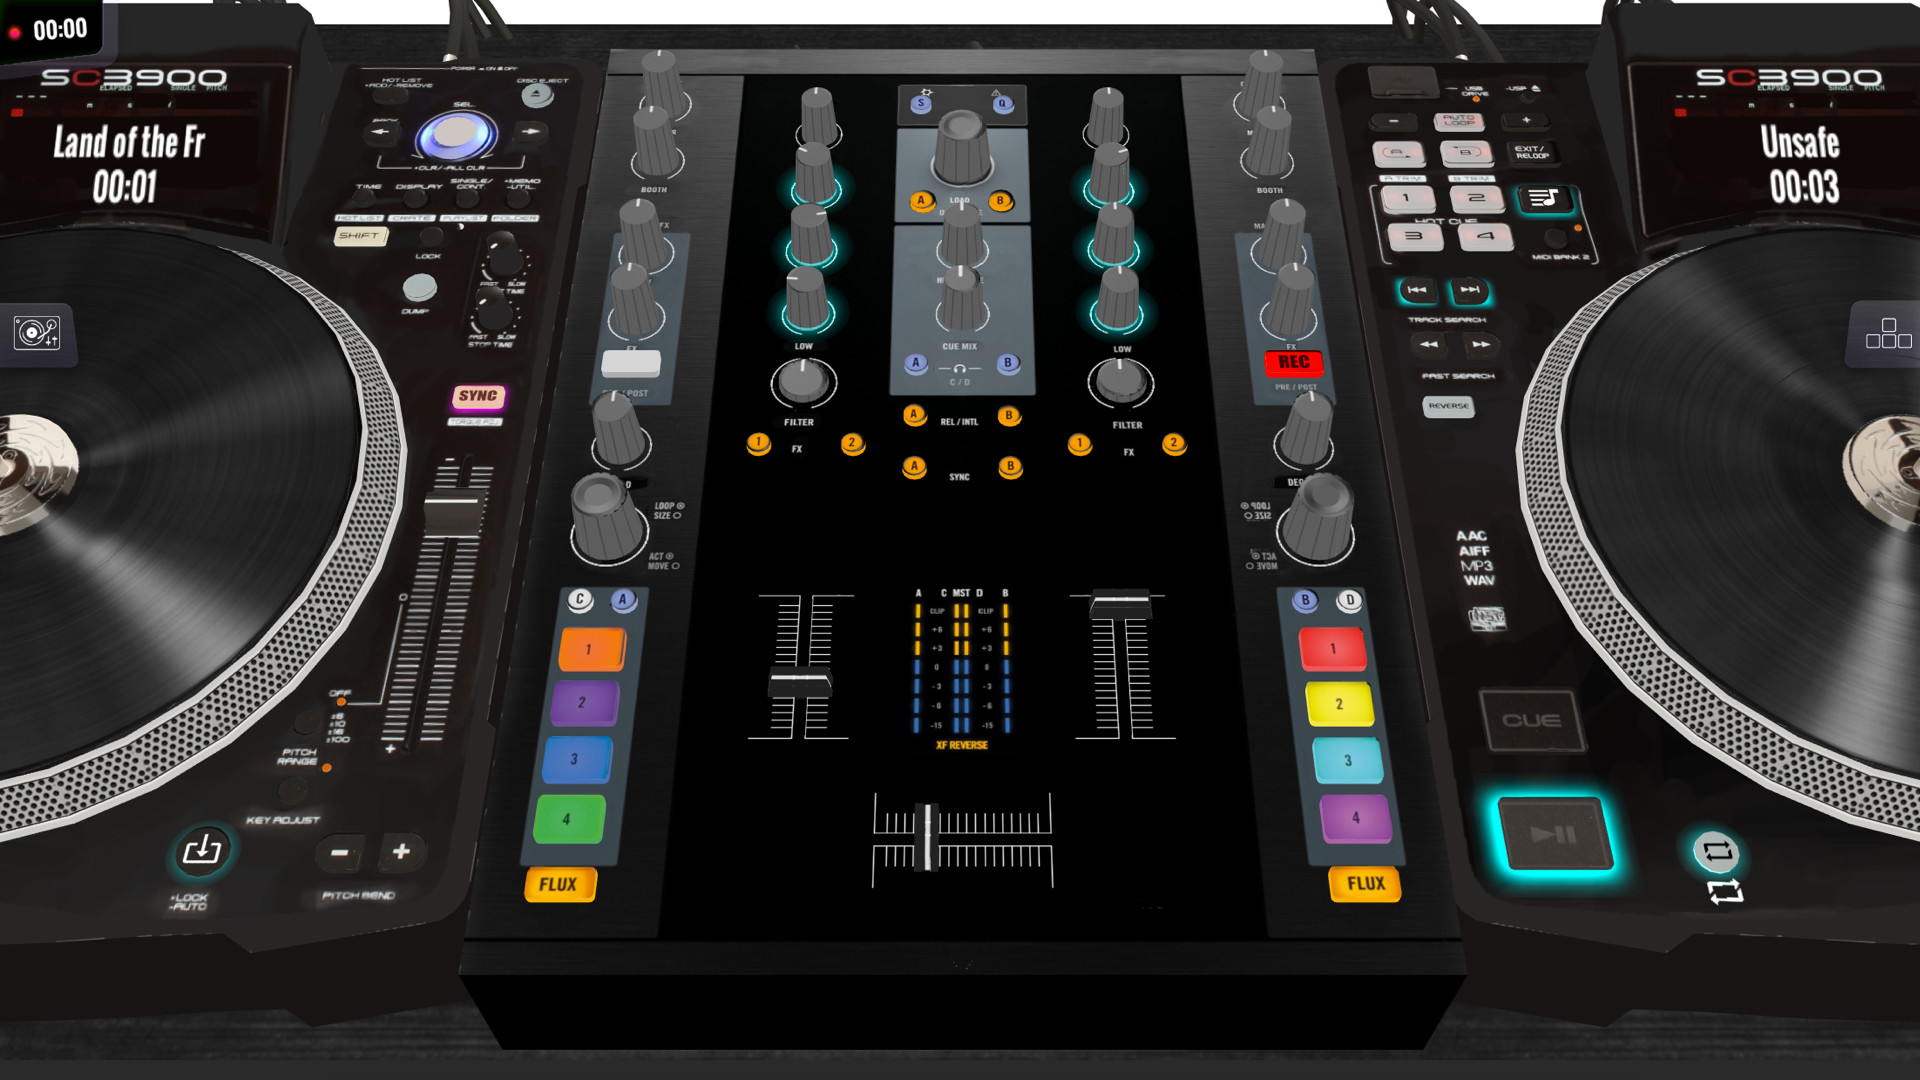 Party Mixer DJ Player App for Android